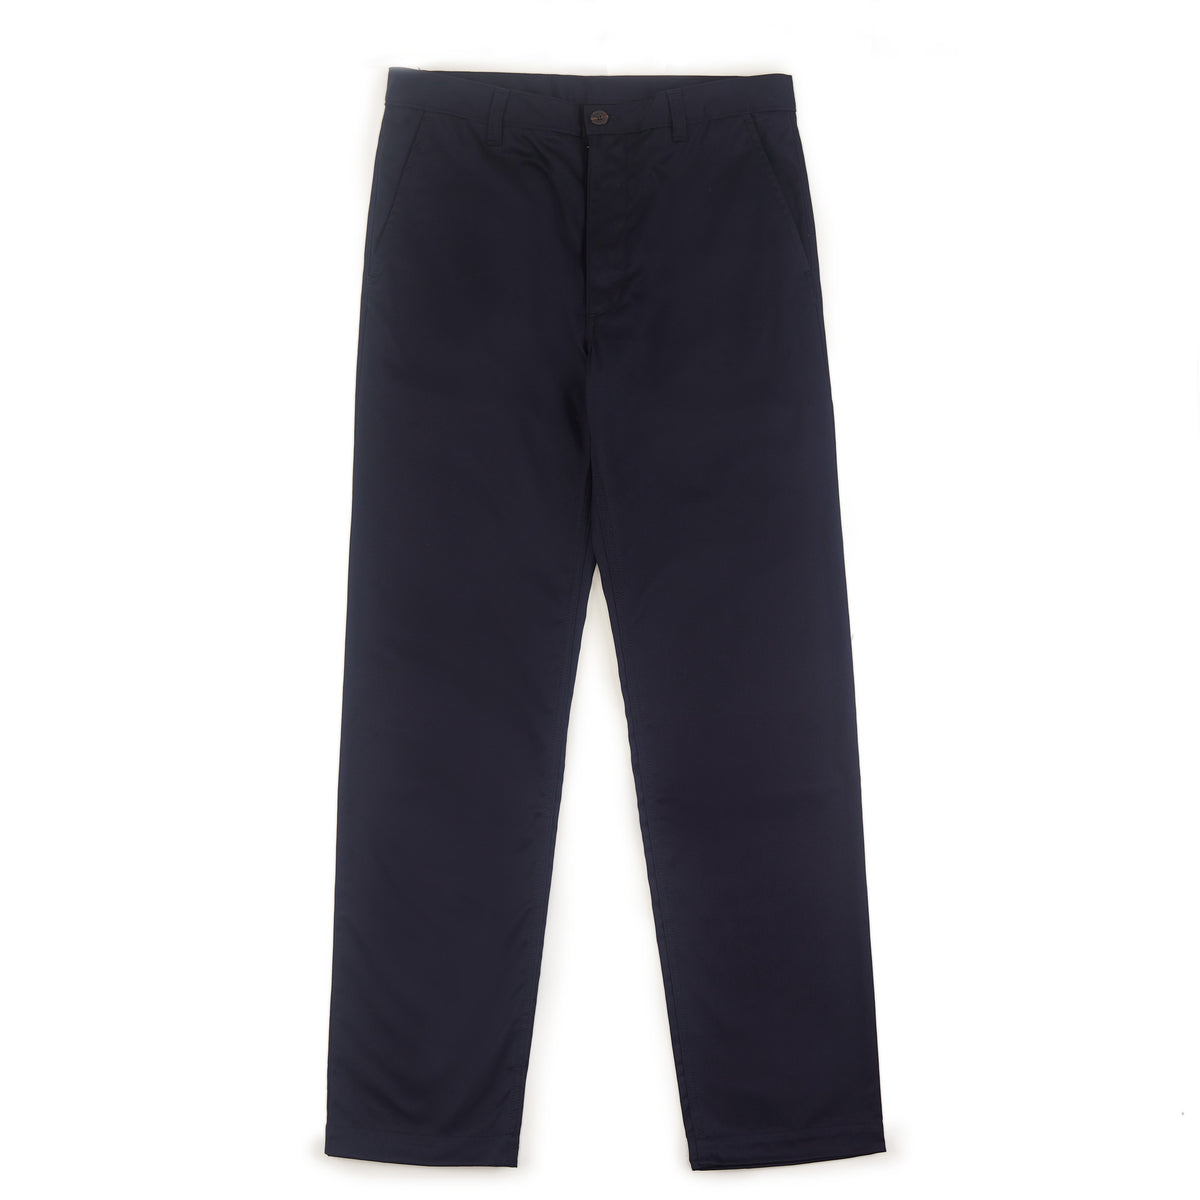 Men's Relaxed Chinos Navy 01 - Community Clothing